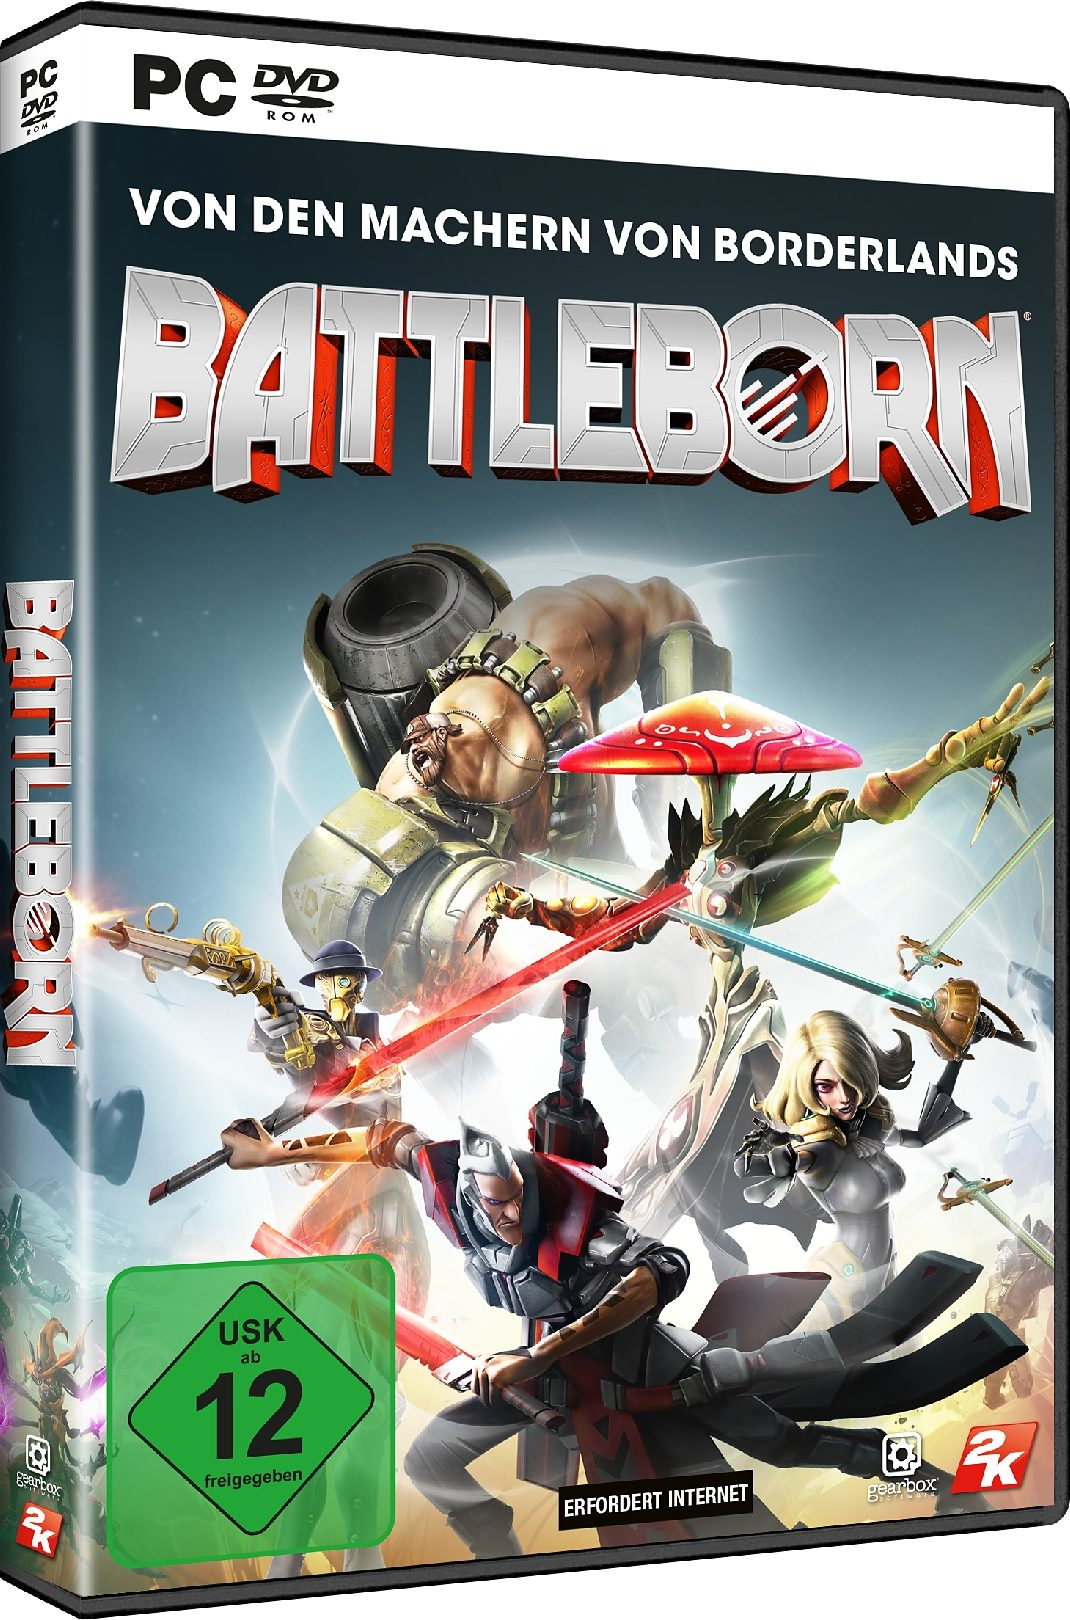 Take 2 Battleborn »PC«